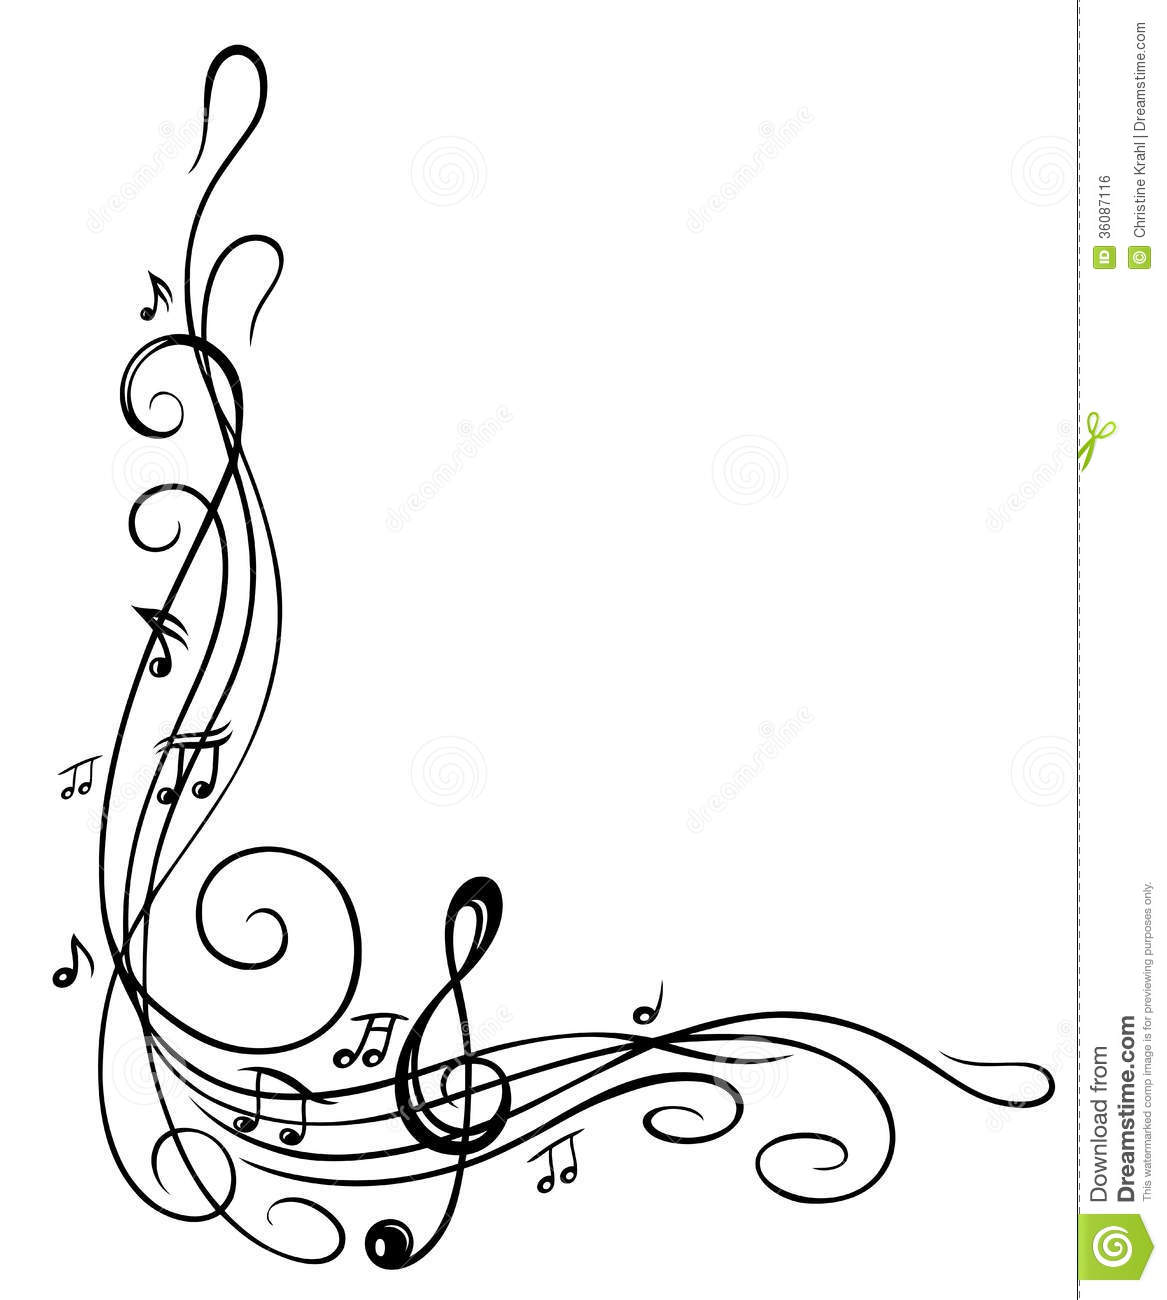 Microsoft Clipart Music Notes